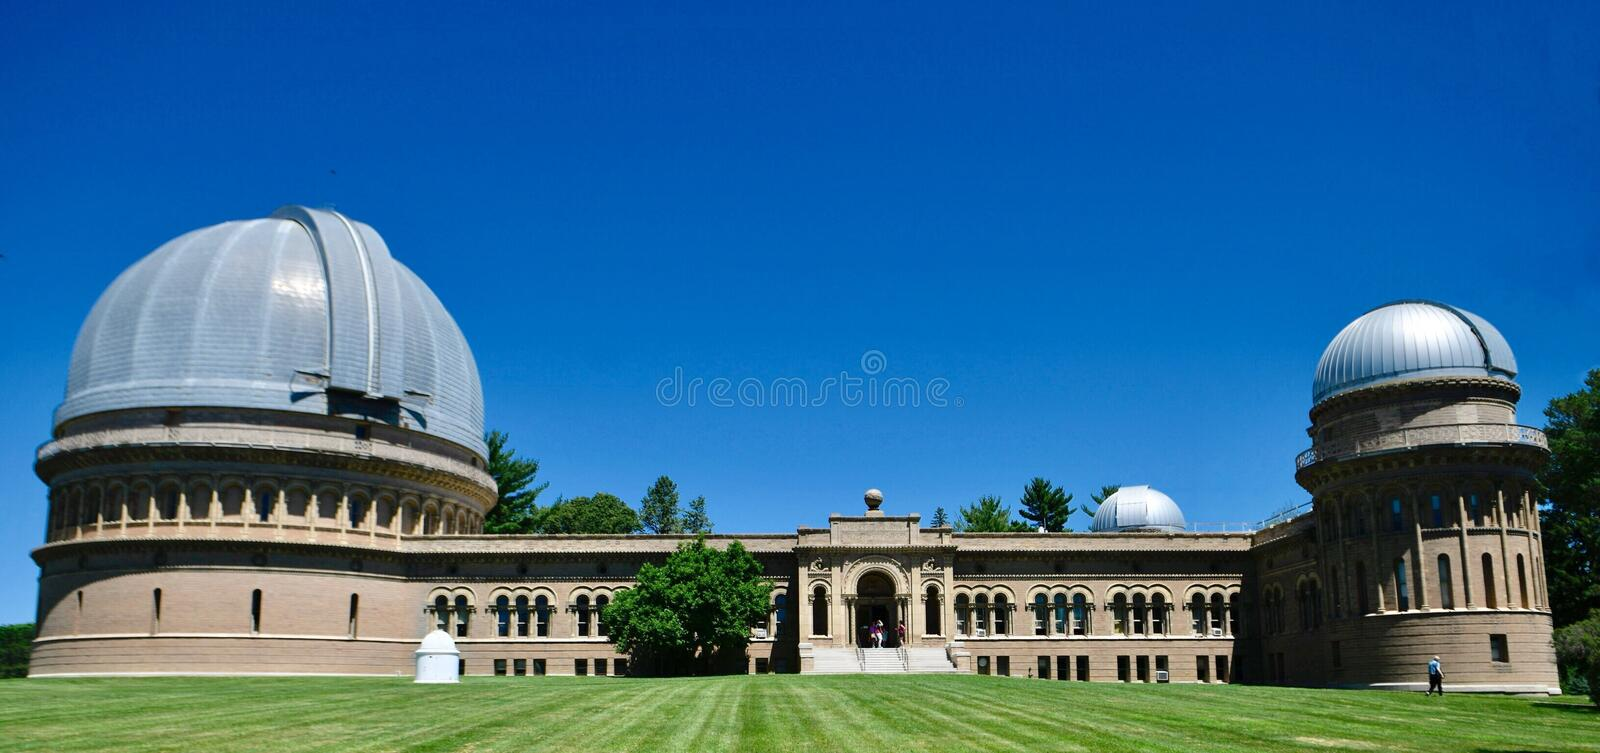 Yerkes Observatory. This is a Summer picture of the historic Yerkes Observatory located in Williams Bay, Wisconsin in Walworth County. This observatory is royalty free stock image